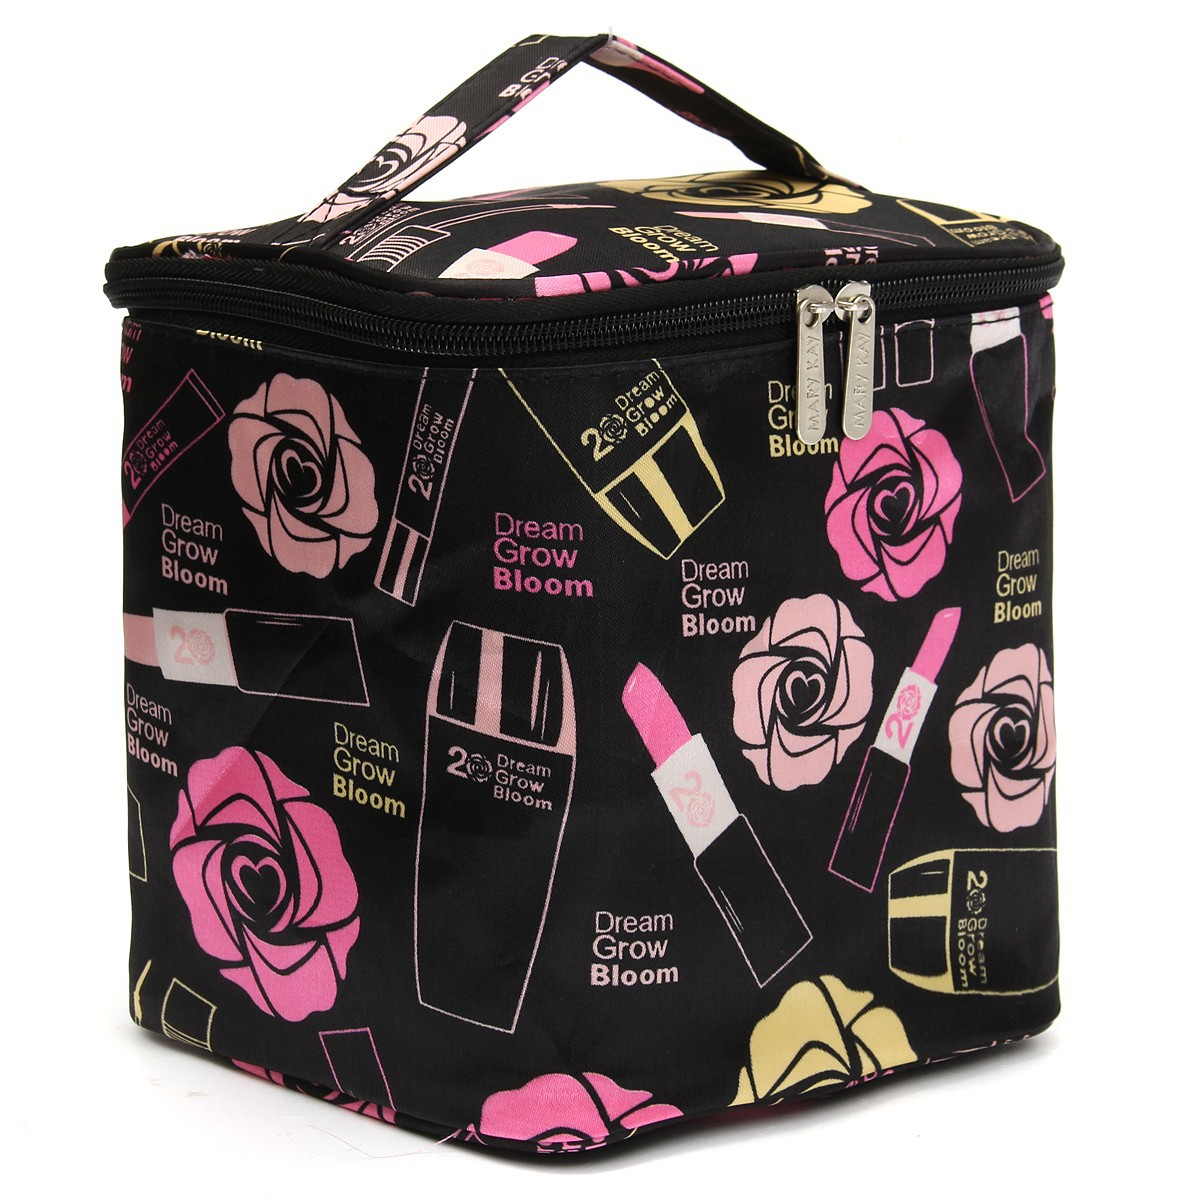 maquillage pochette trousse de toilette organisateur sac. Black Bedroom Furniture Sets. Home Design Ideas